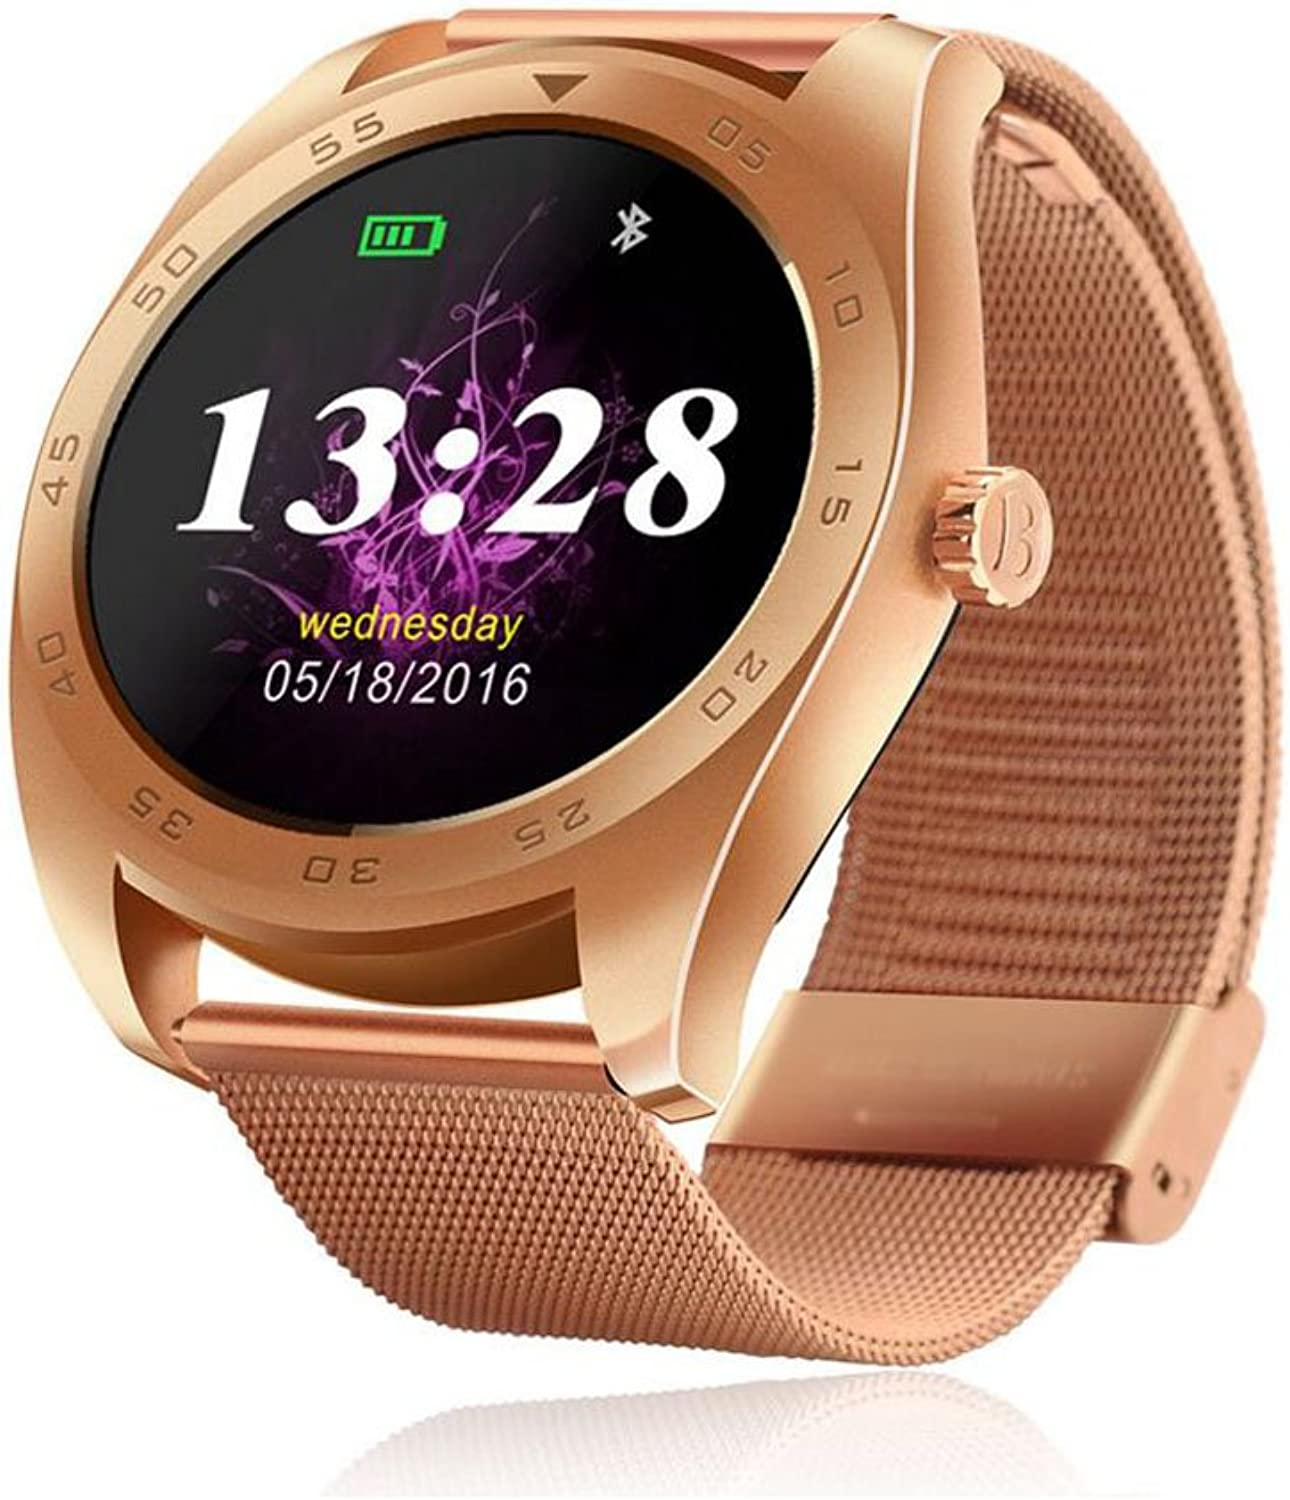 KLE Intelligente Uhr Blautooth Herzfrequenz Uhr Handy Touchscreen Smart Watch Sport Fitness Smart Watch (Farbe   Gold)